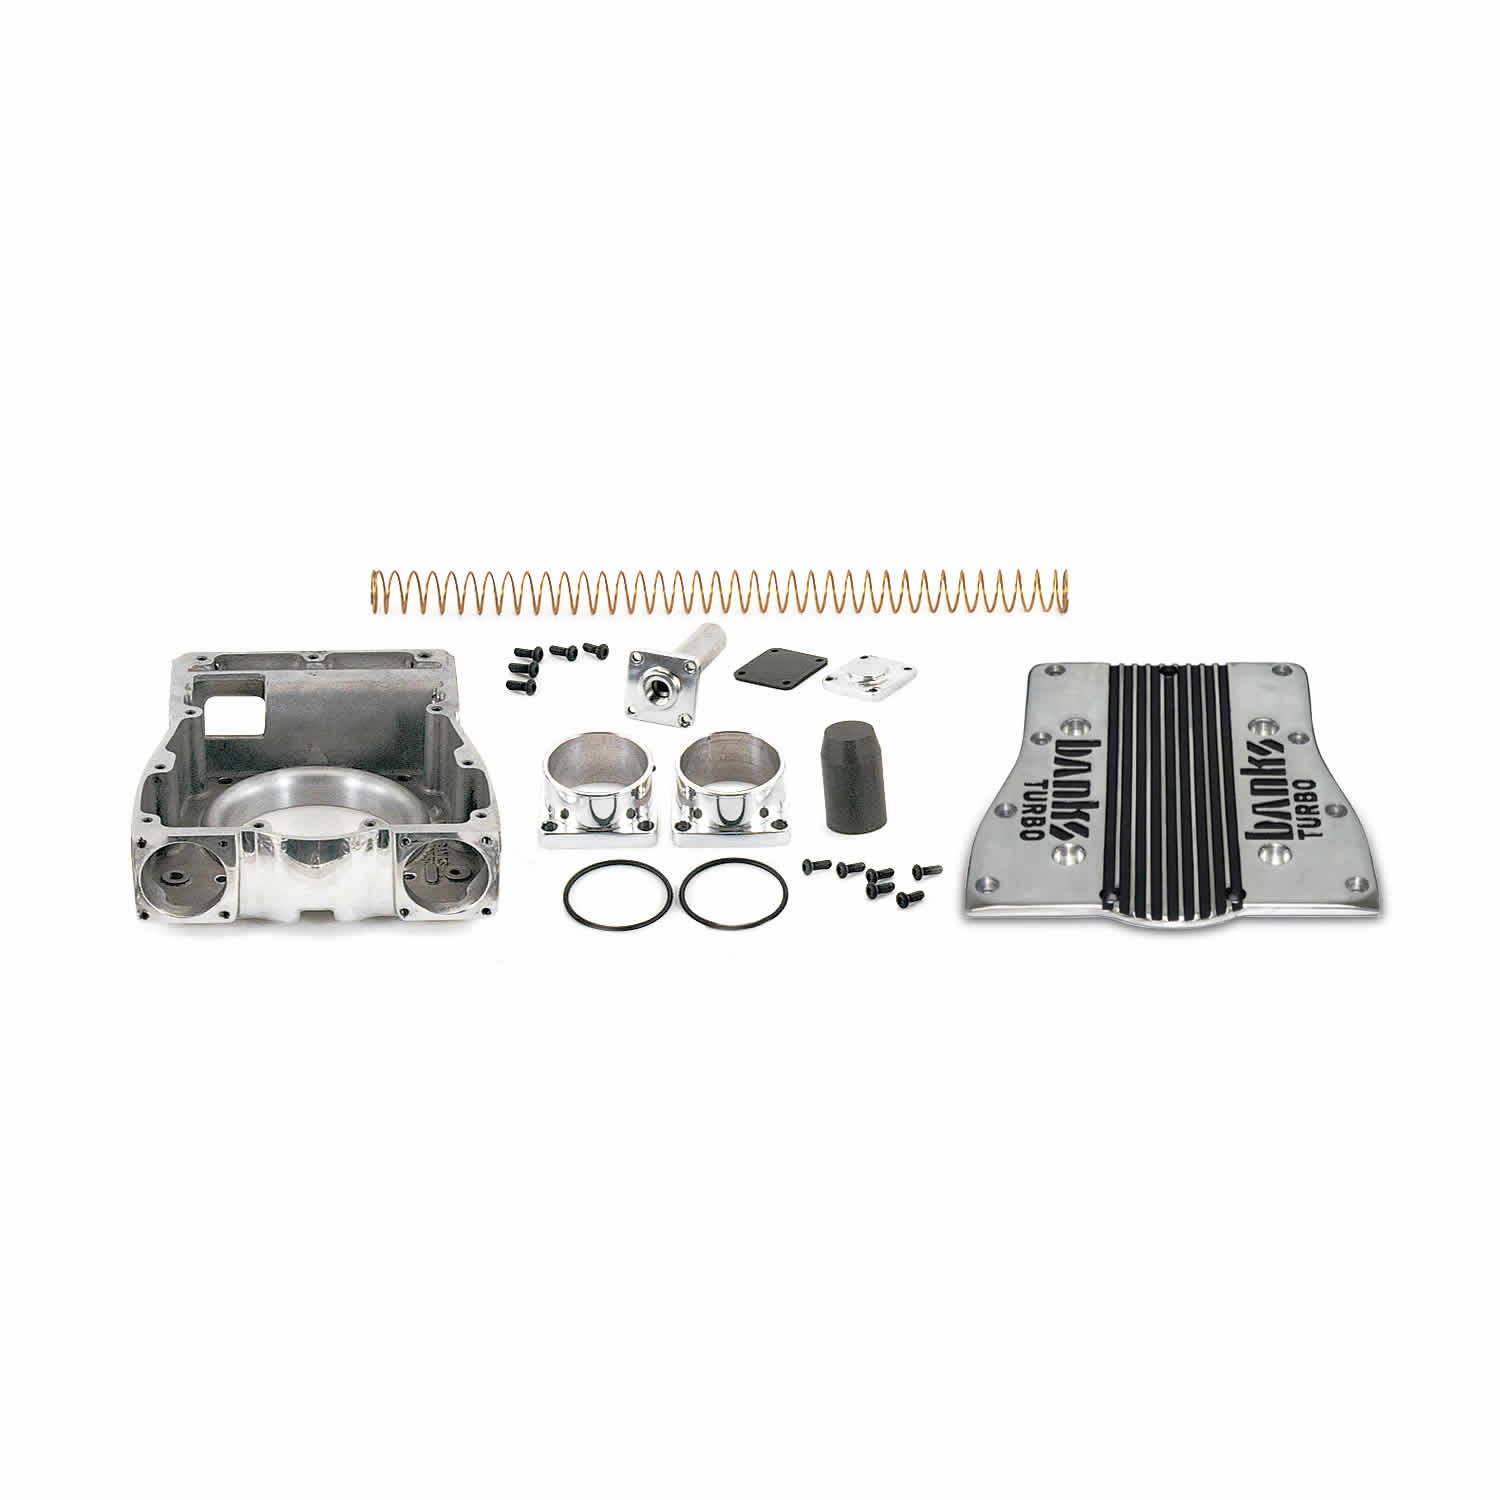 Banks Power 21112 Pressure Chamber Kit-Twin Turbo System